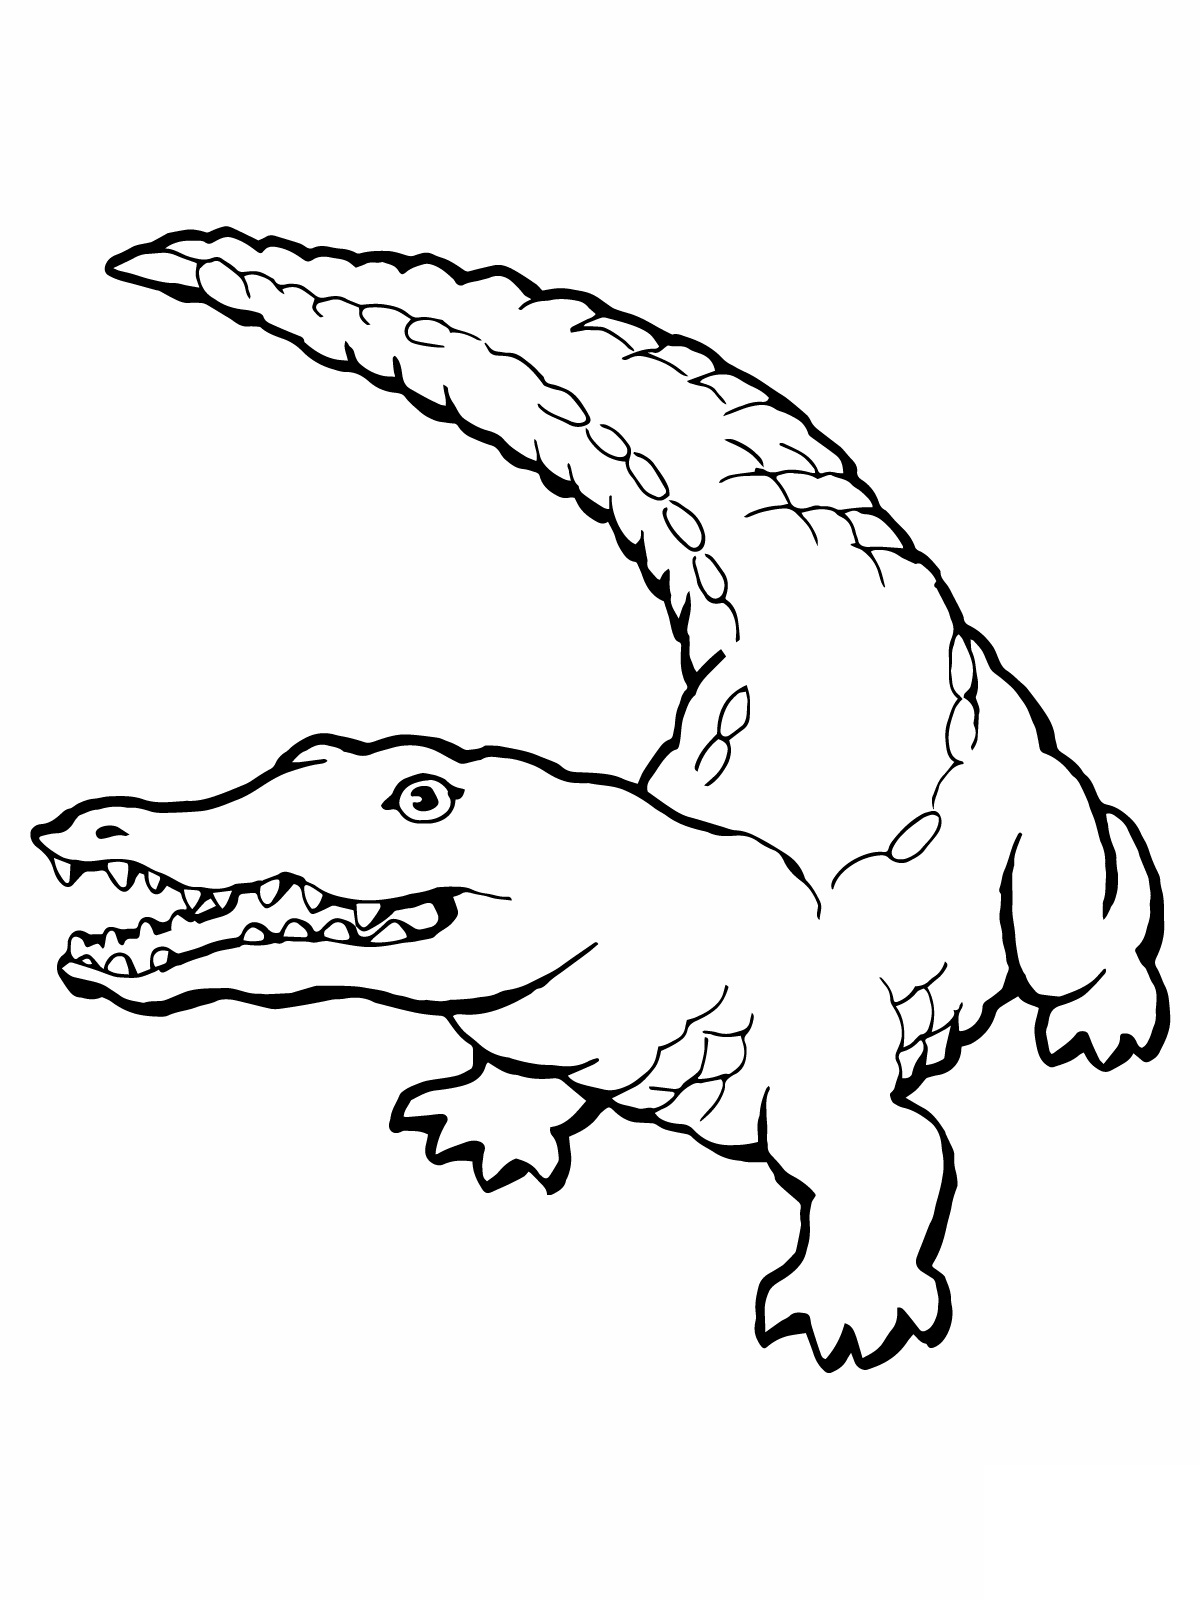 Uncategorized Crocodile Coloring Pages To Print free printable crocodile coloring pages for kids printable